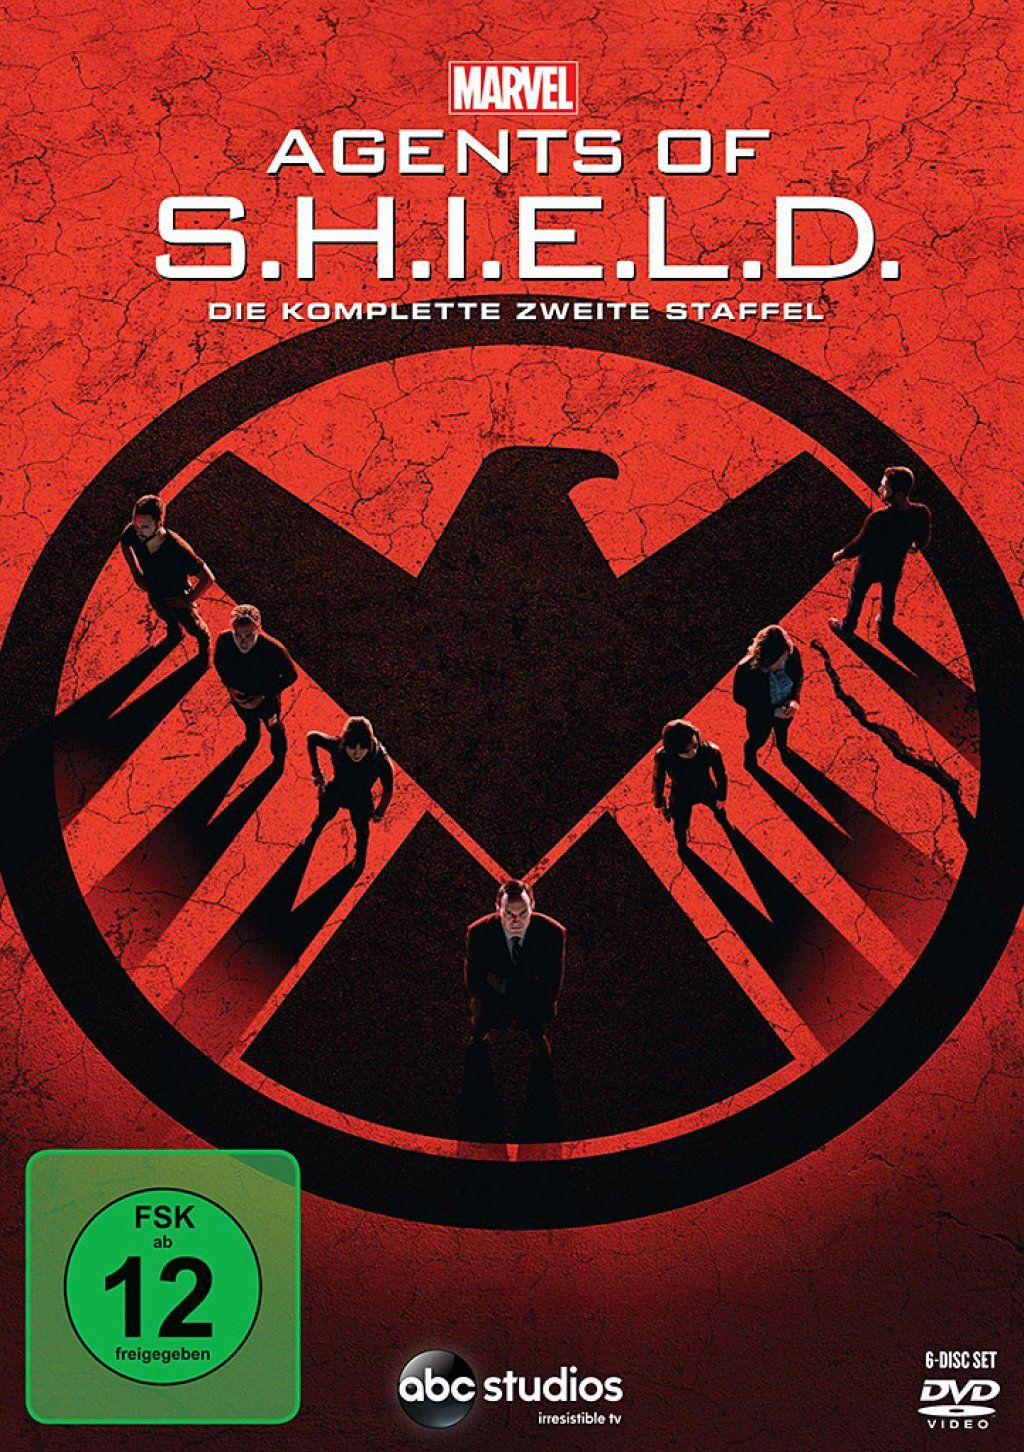 Marvel's Agents of S.H.I.E.L.D. - Die komplette zweite Staffel (6 Discs)